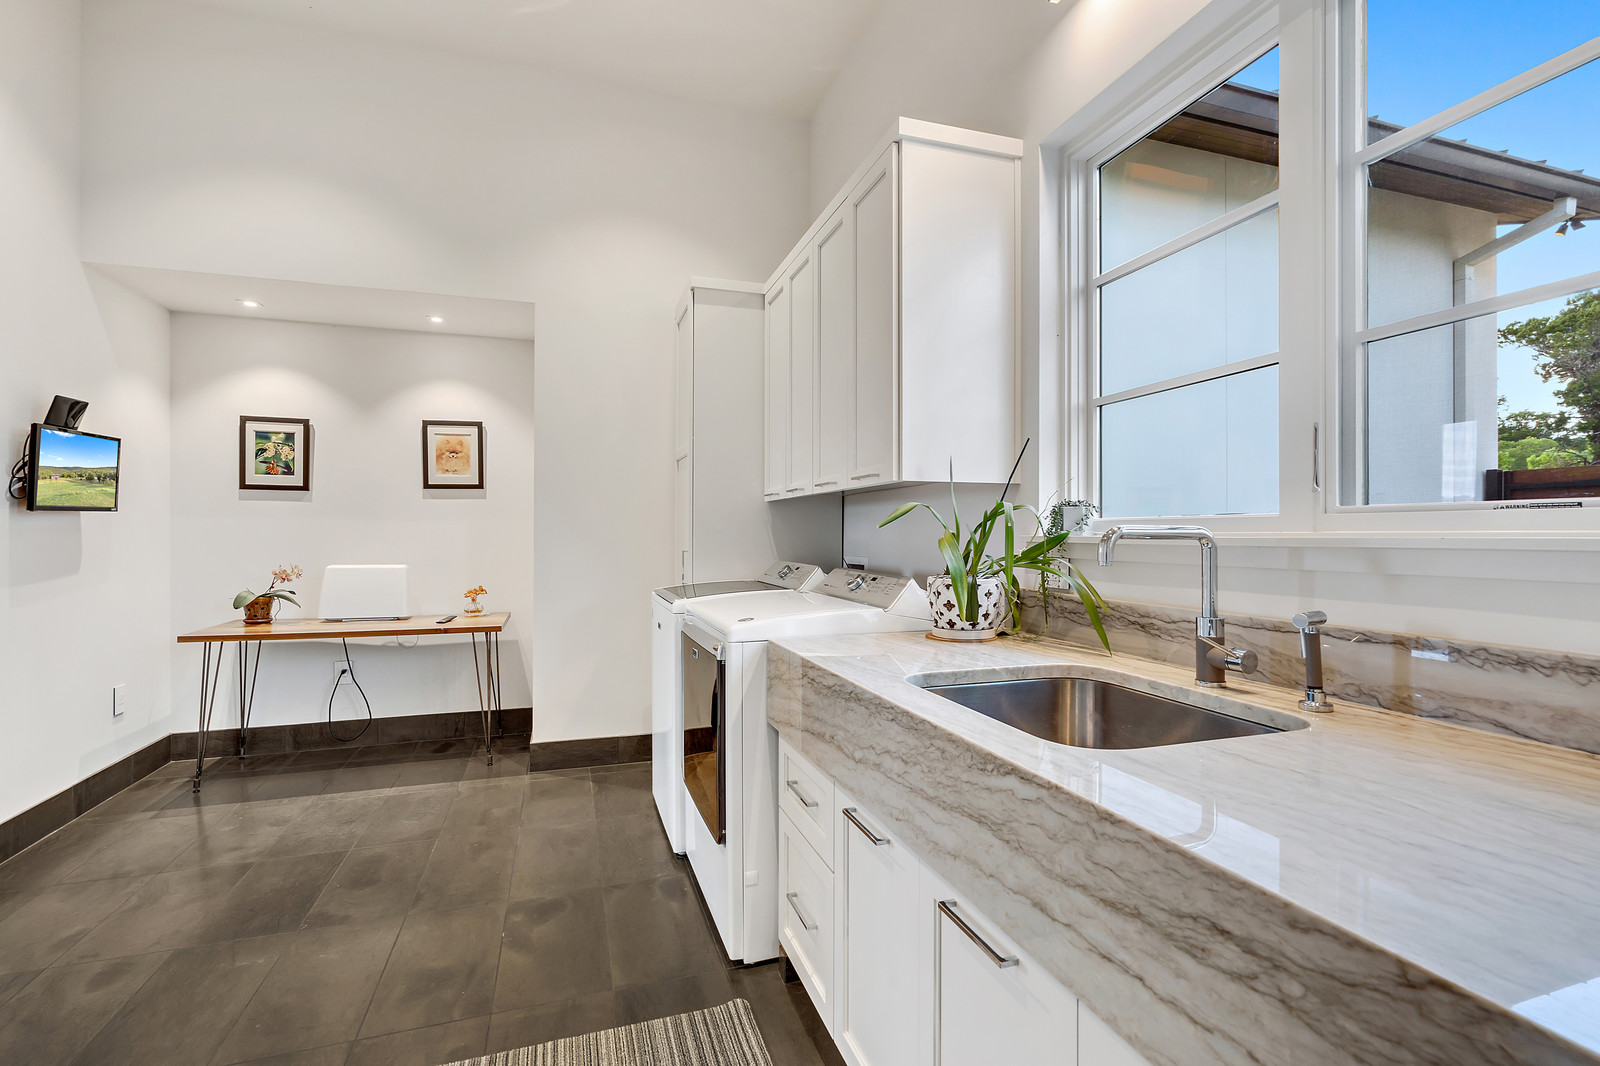 Even the laundry room is gorgeous and well-planned